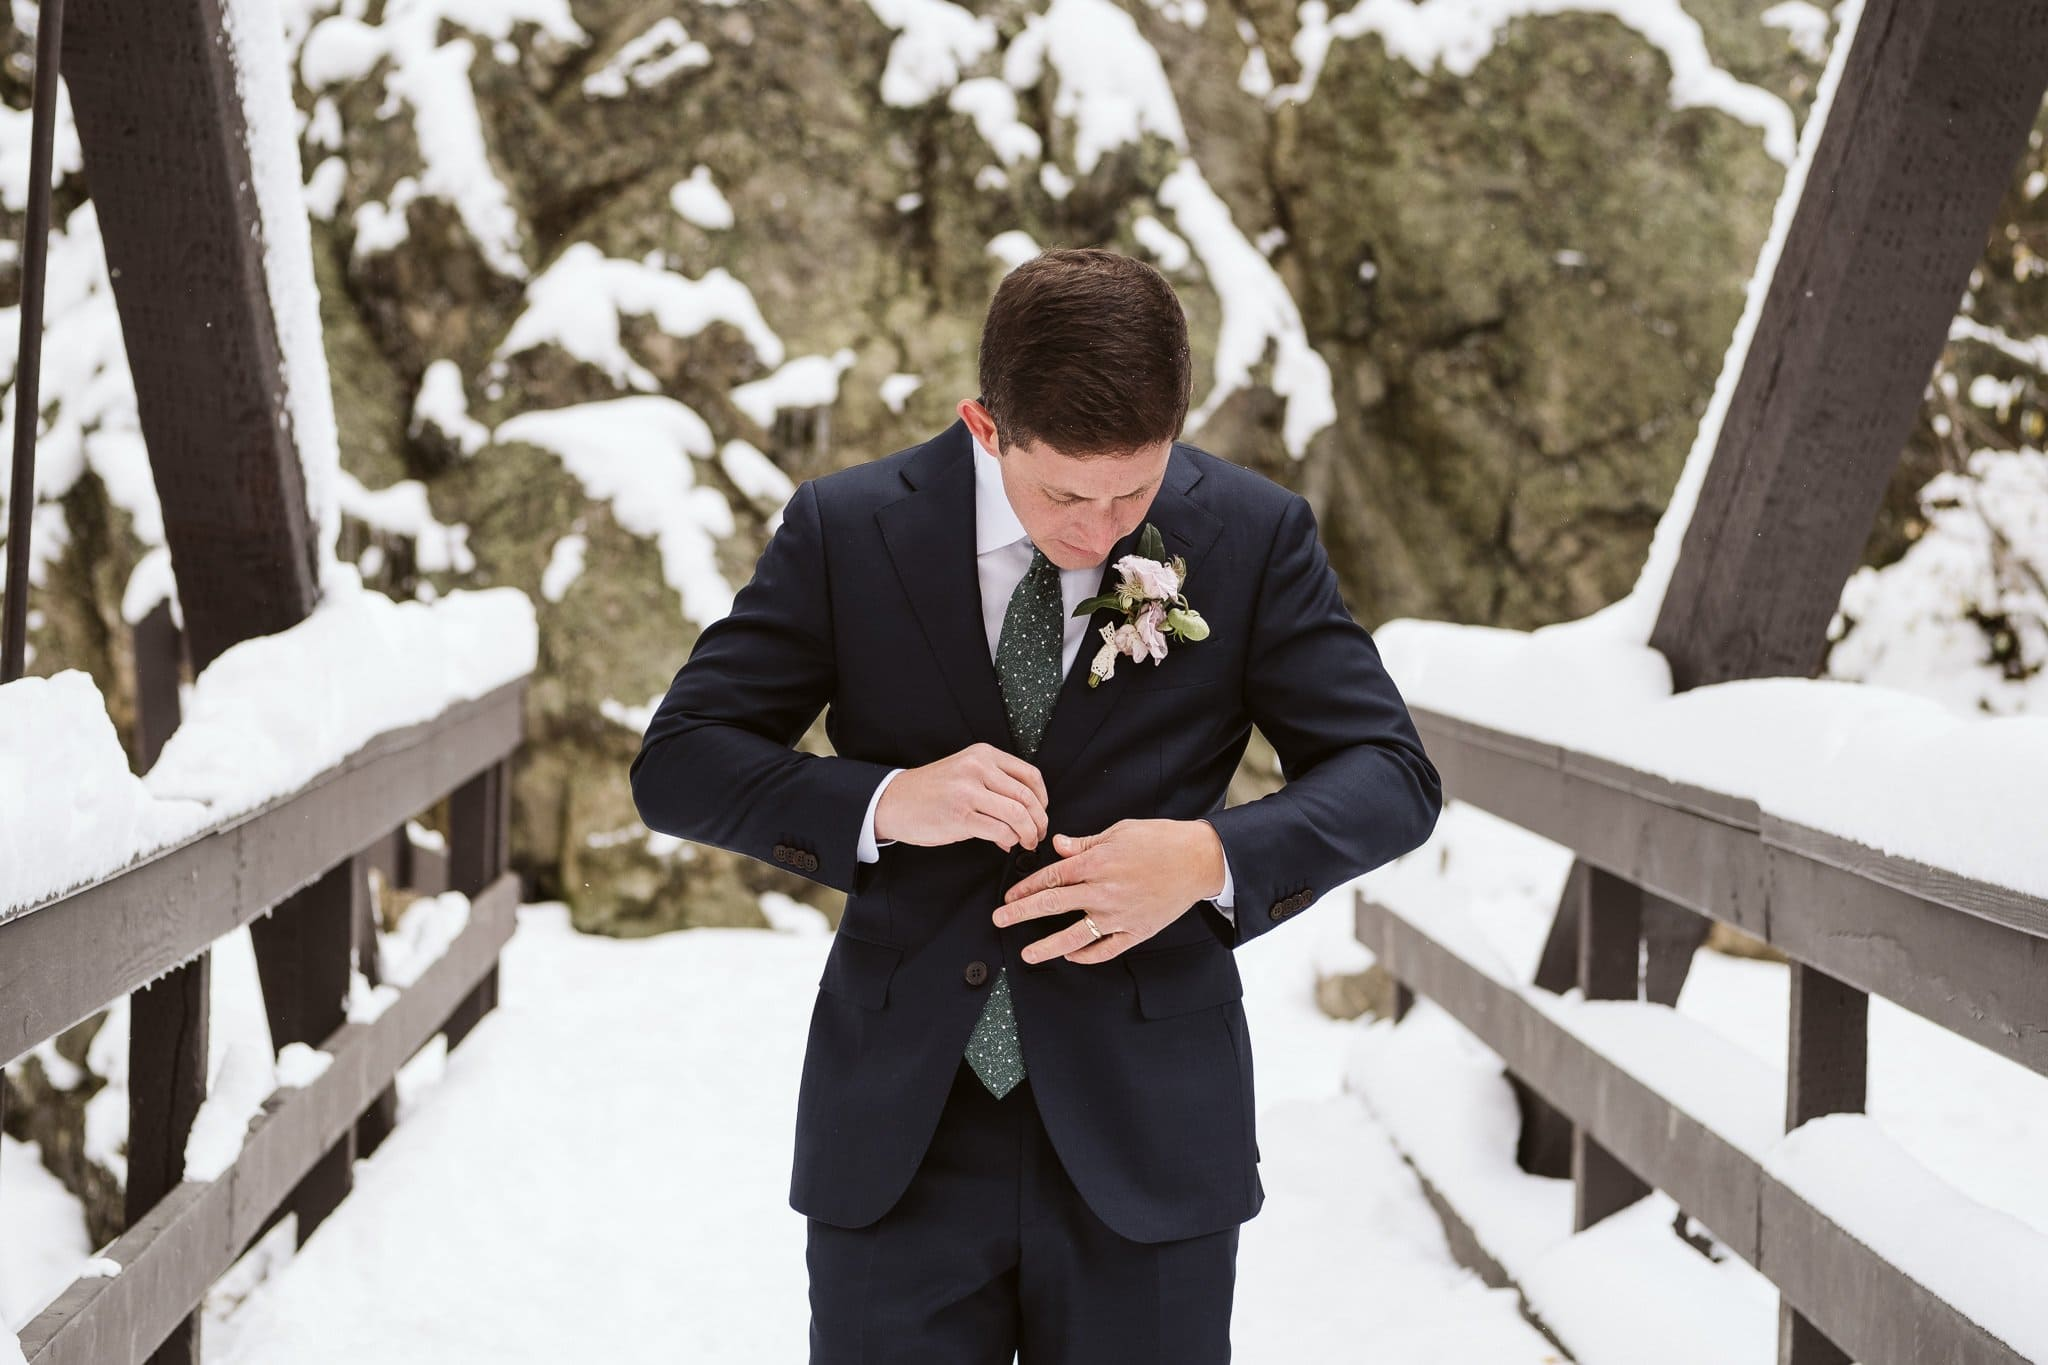 Groom portraits at Fish Creek Falls in Steamboat Springs, Colorado winter elopement